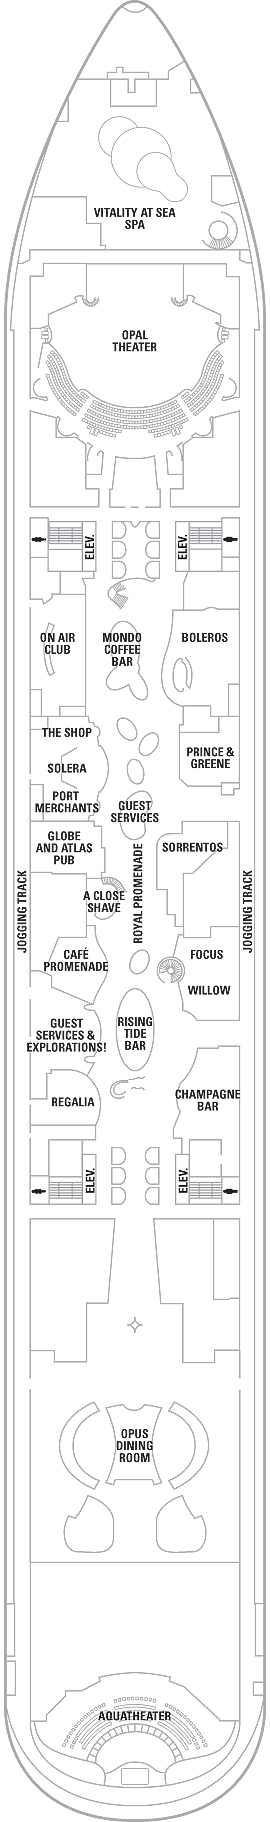 Oasis Of The Seas Deck 5 layout